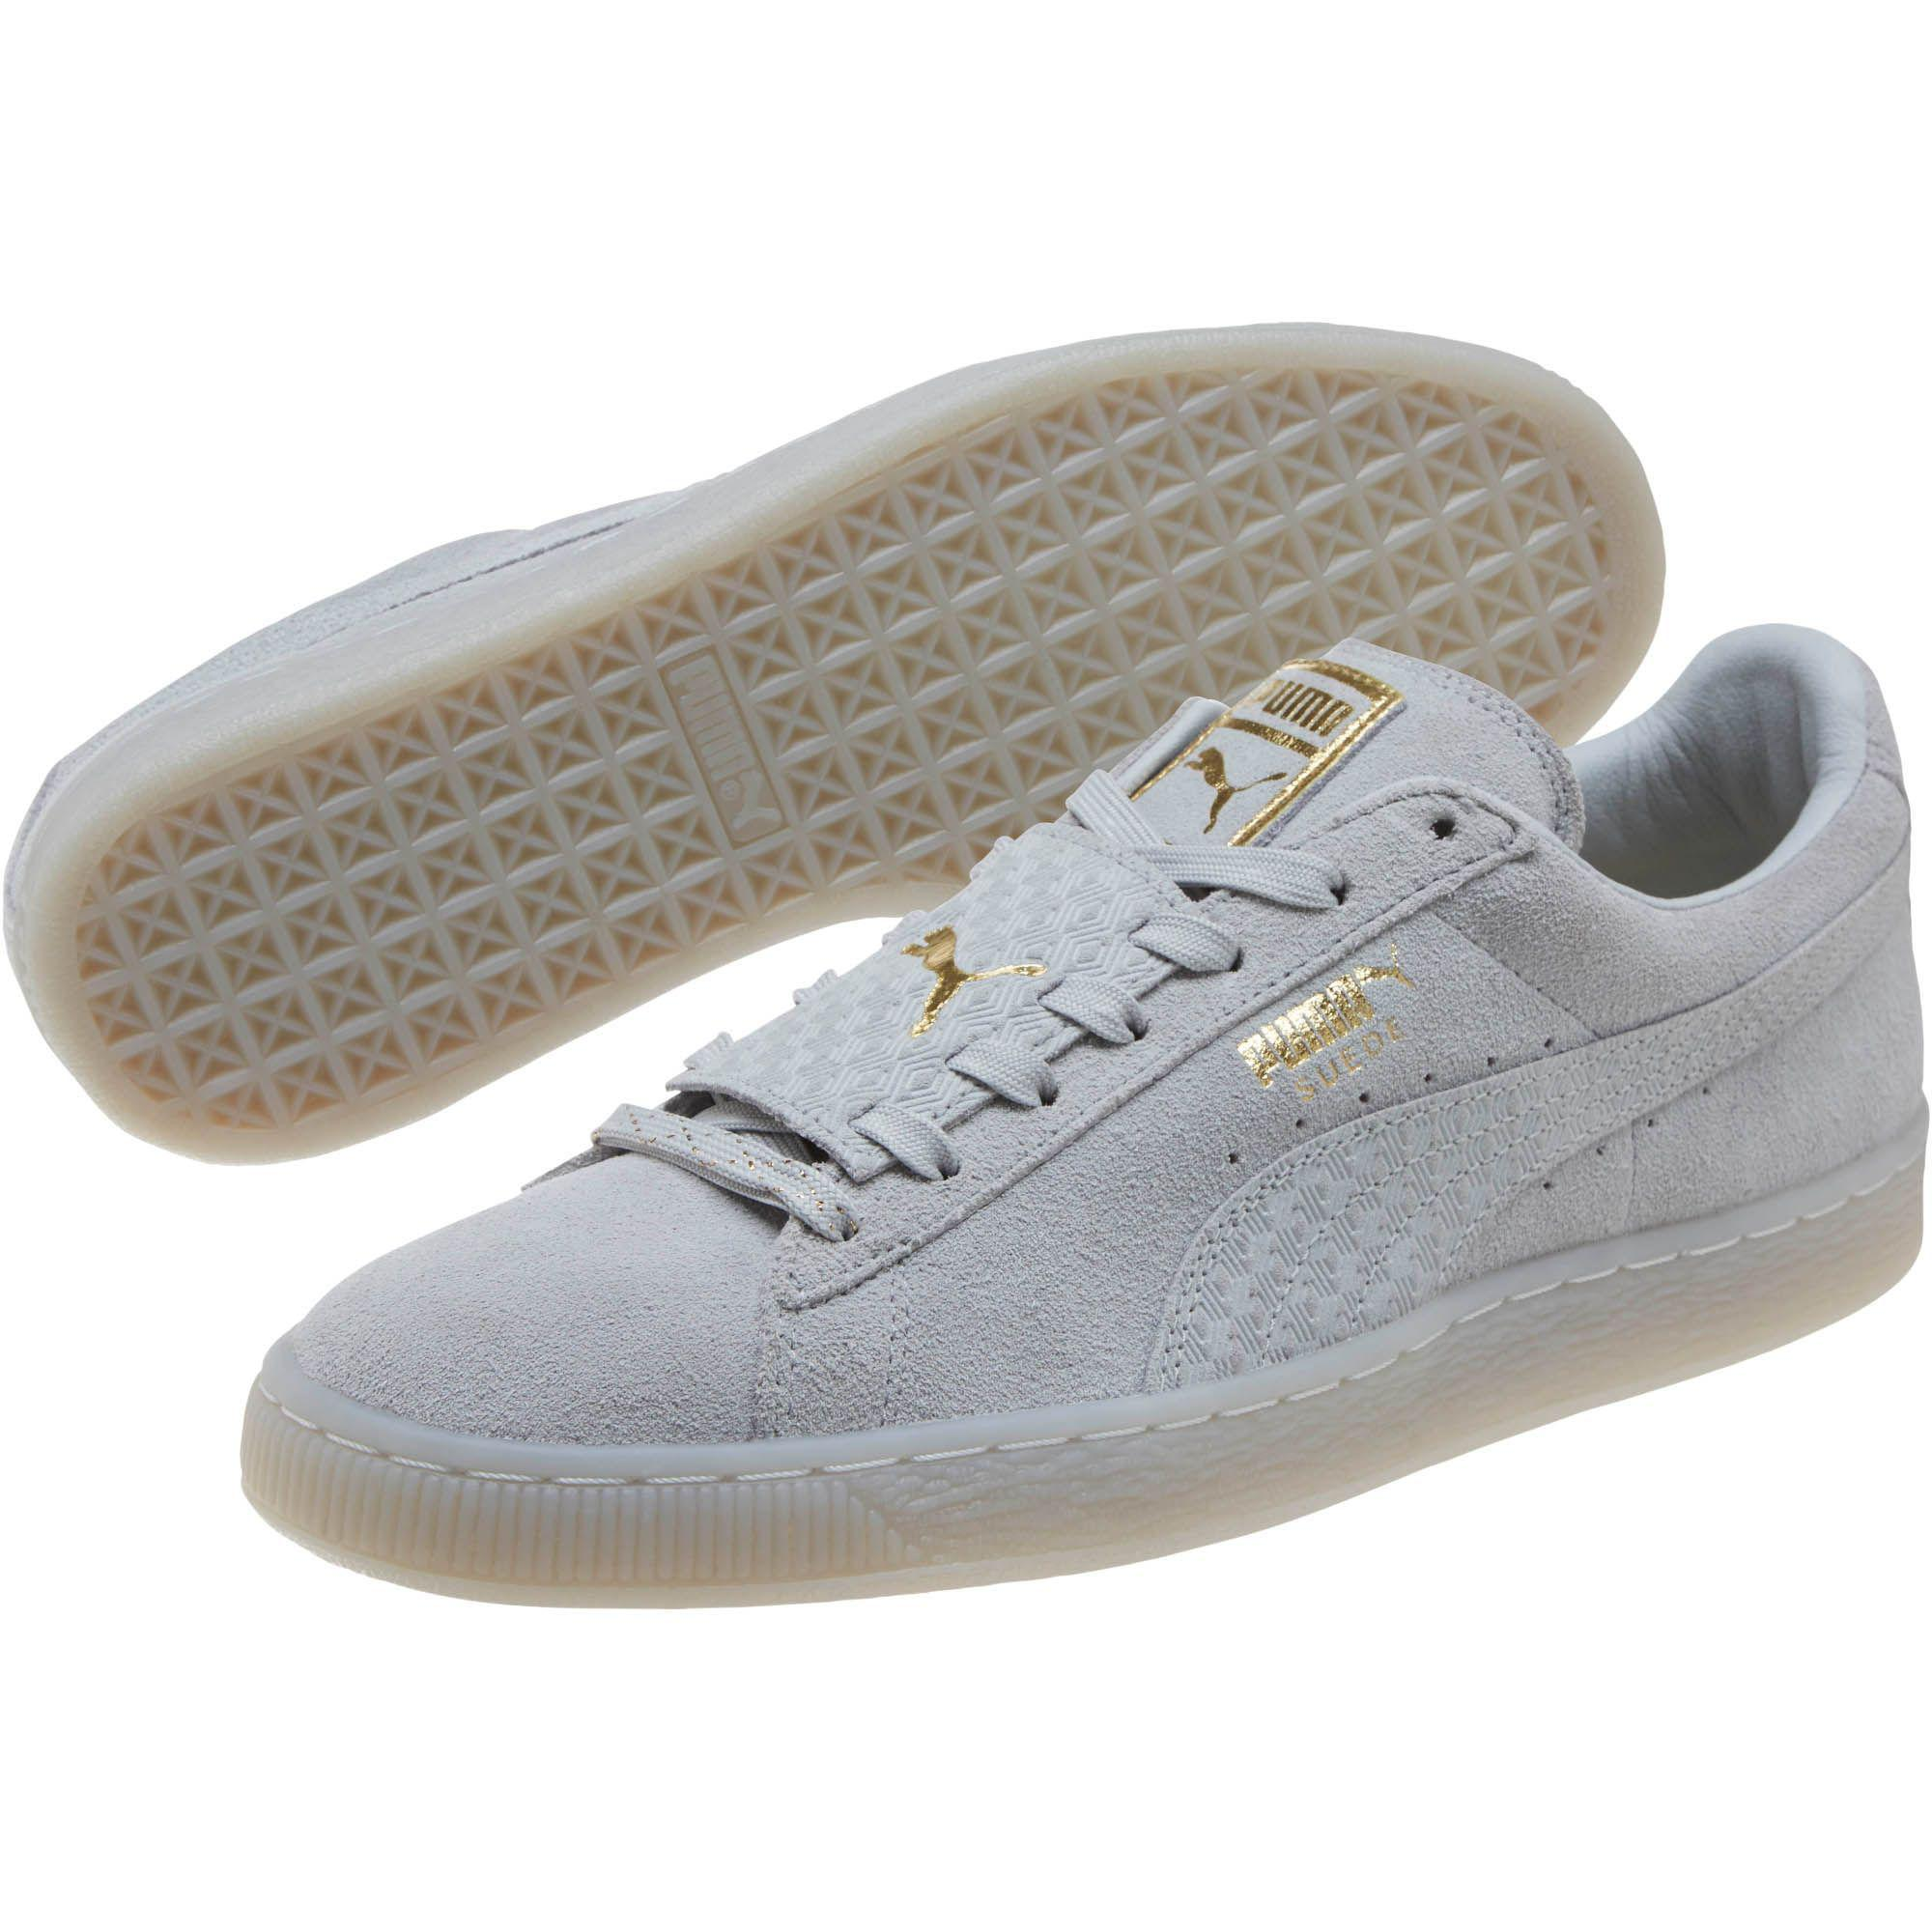 6af35cc42d81 Lyst - PUMA Suede Epic Remix Men s Sneakers in Gray for Men